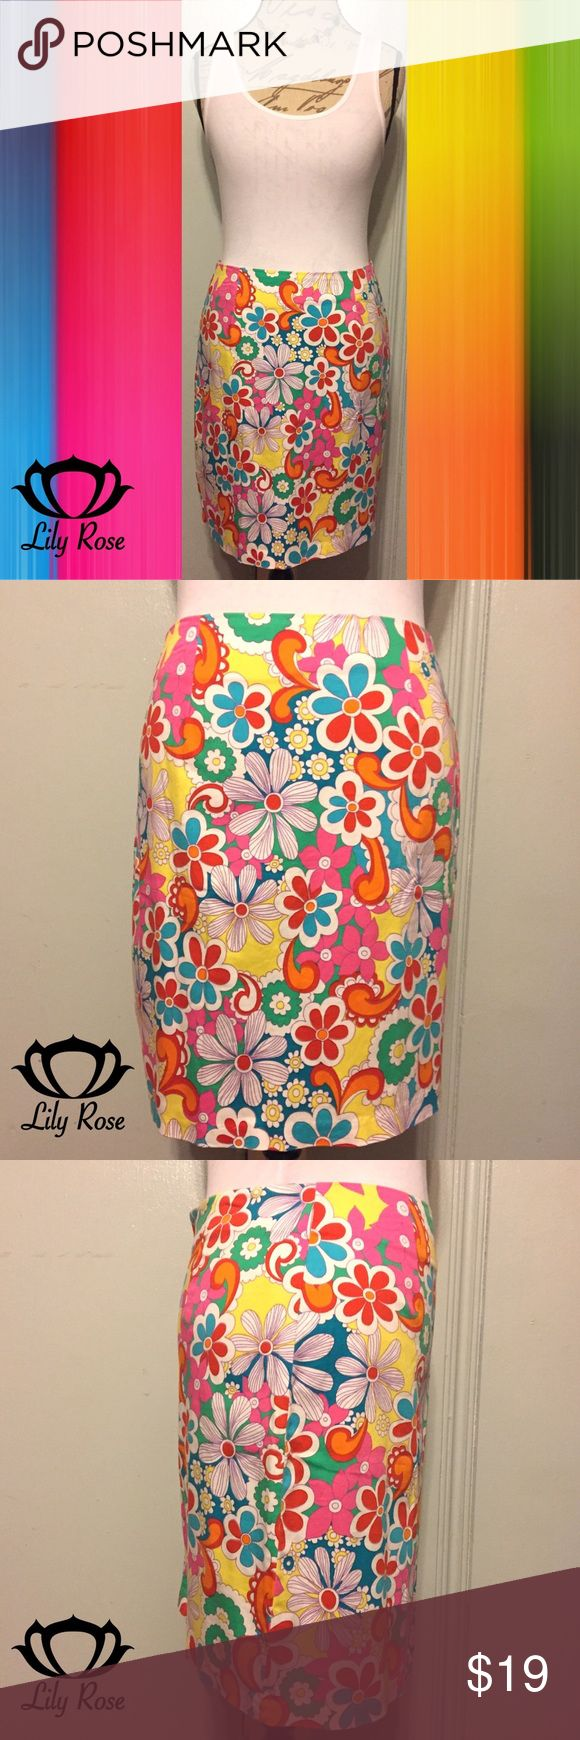 "LILY ROSE Vintage Multi-Color Flower Pencil Skirt SIZE M. 18.5"" Length. 14.5"" Waist. Bright Vibrant Candy Red, Tiger Orange, Cerulean & Ocean Blues, Honey Yellow, Emerald Green, White & Punch Pink Colors. Back Zipper. 97% Cotton/3% Lycra Blend. EUC WORN ONCE Lily Rose Skirts Pencil"